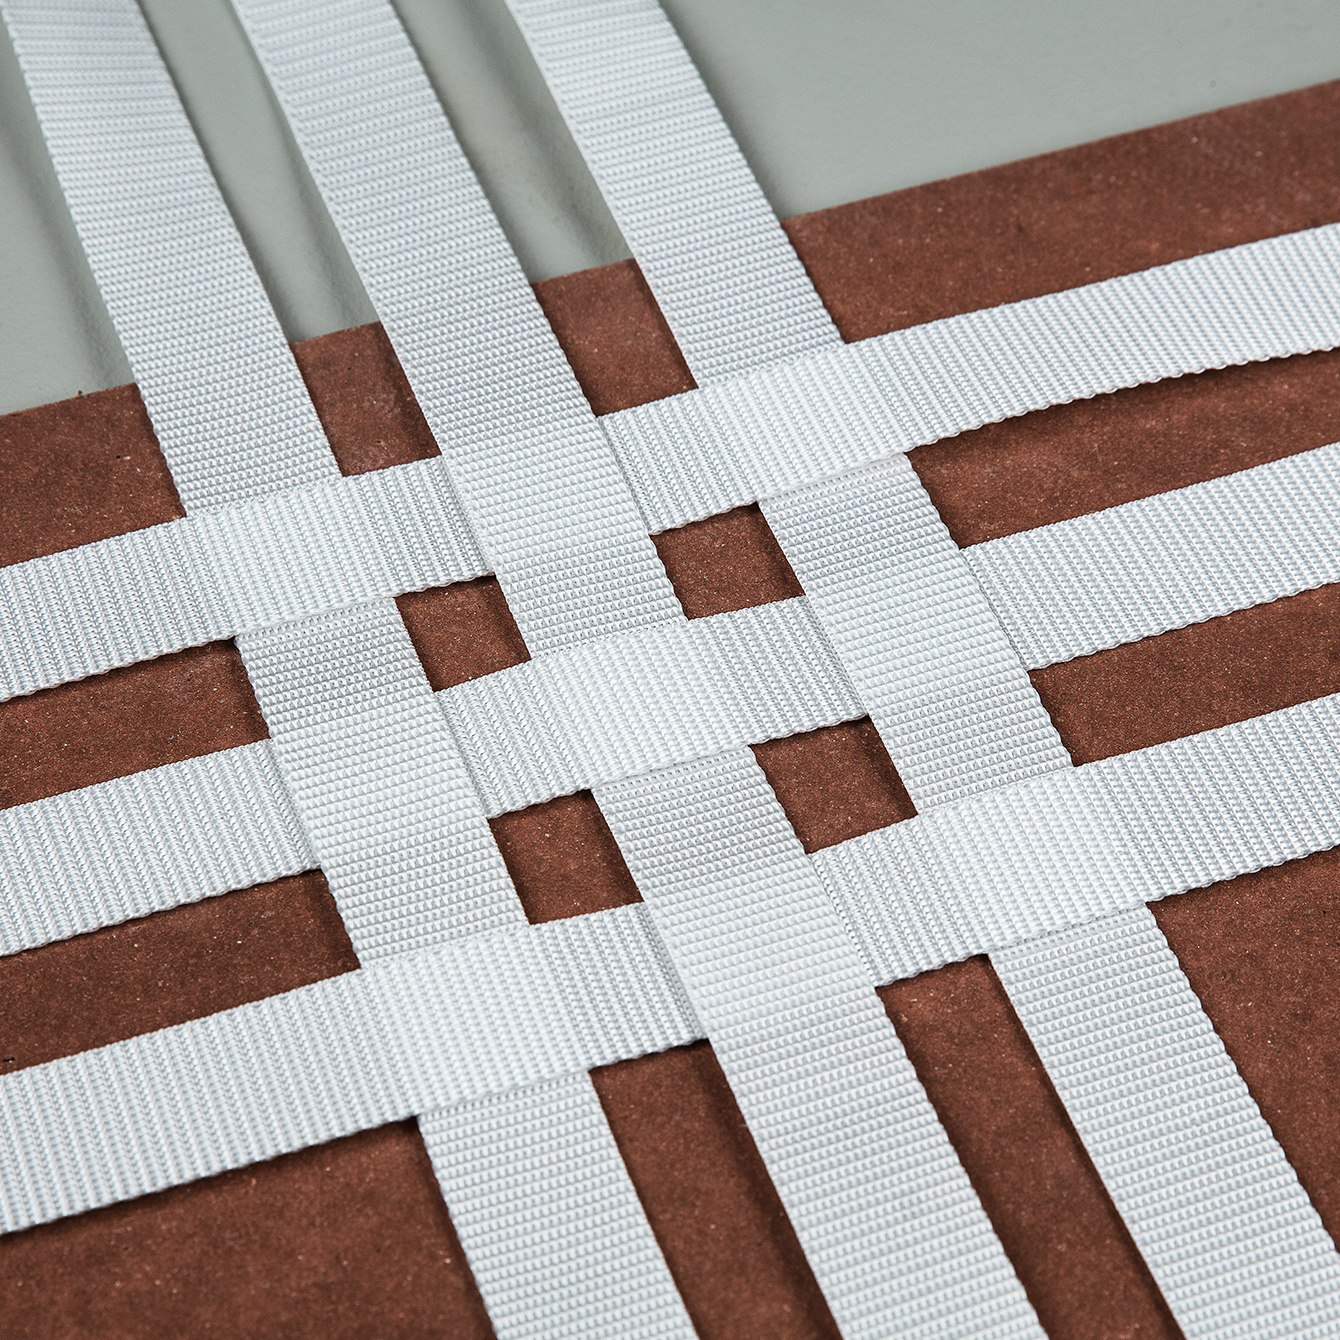 Woven technical straps and tape